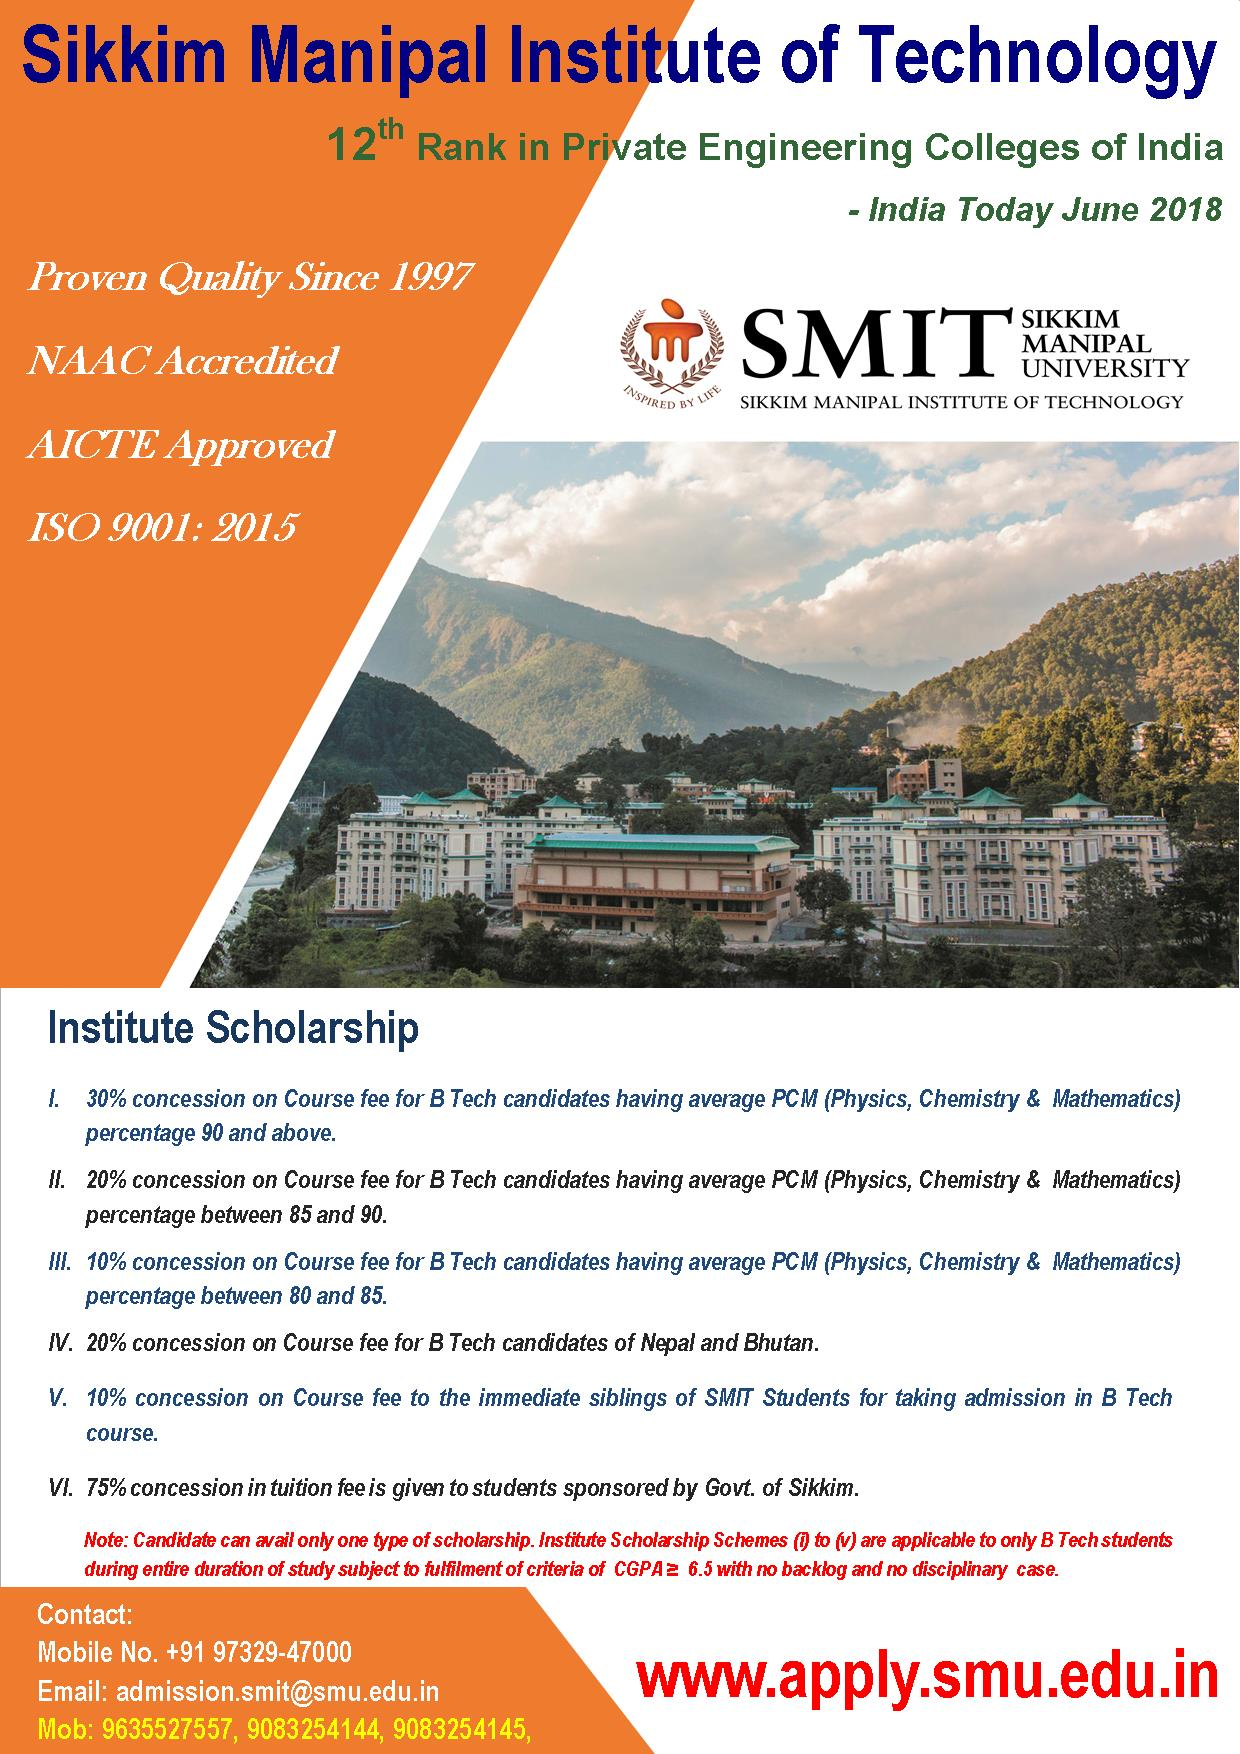 Sikkim Manipal Institute of Technology – Sikkim Manipal University